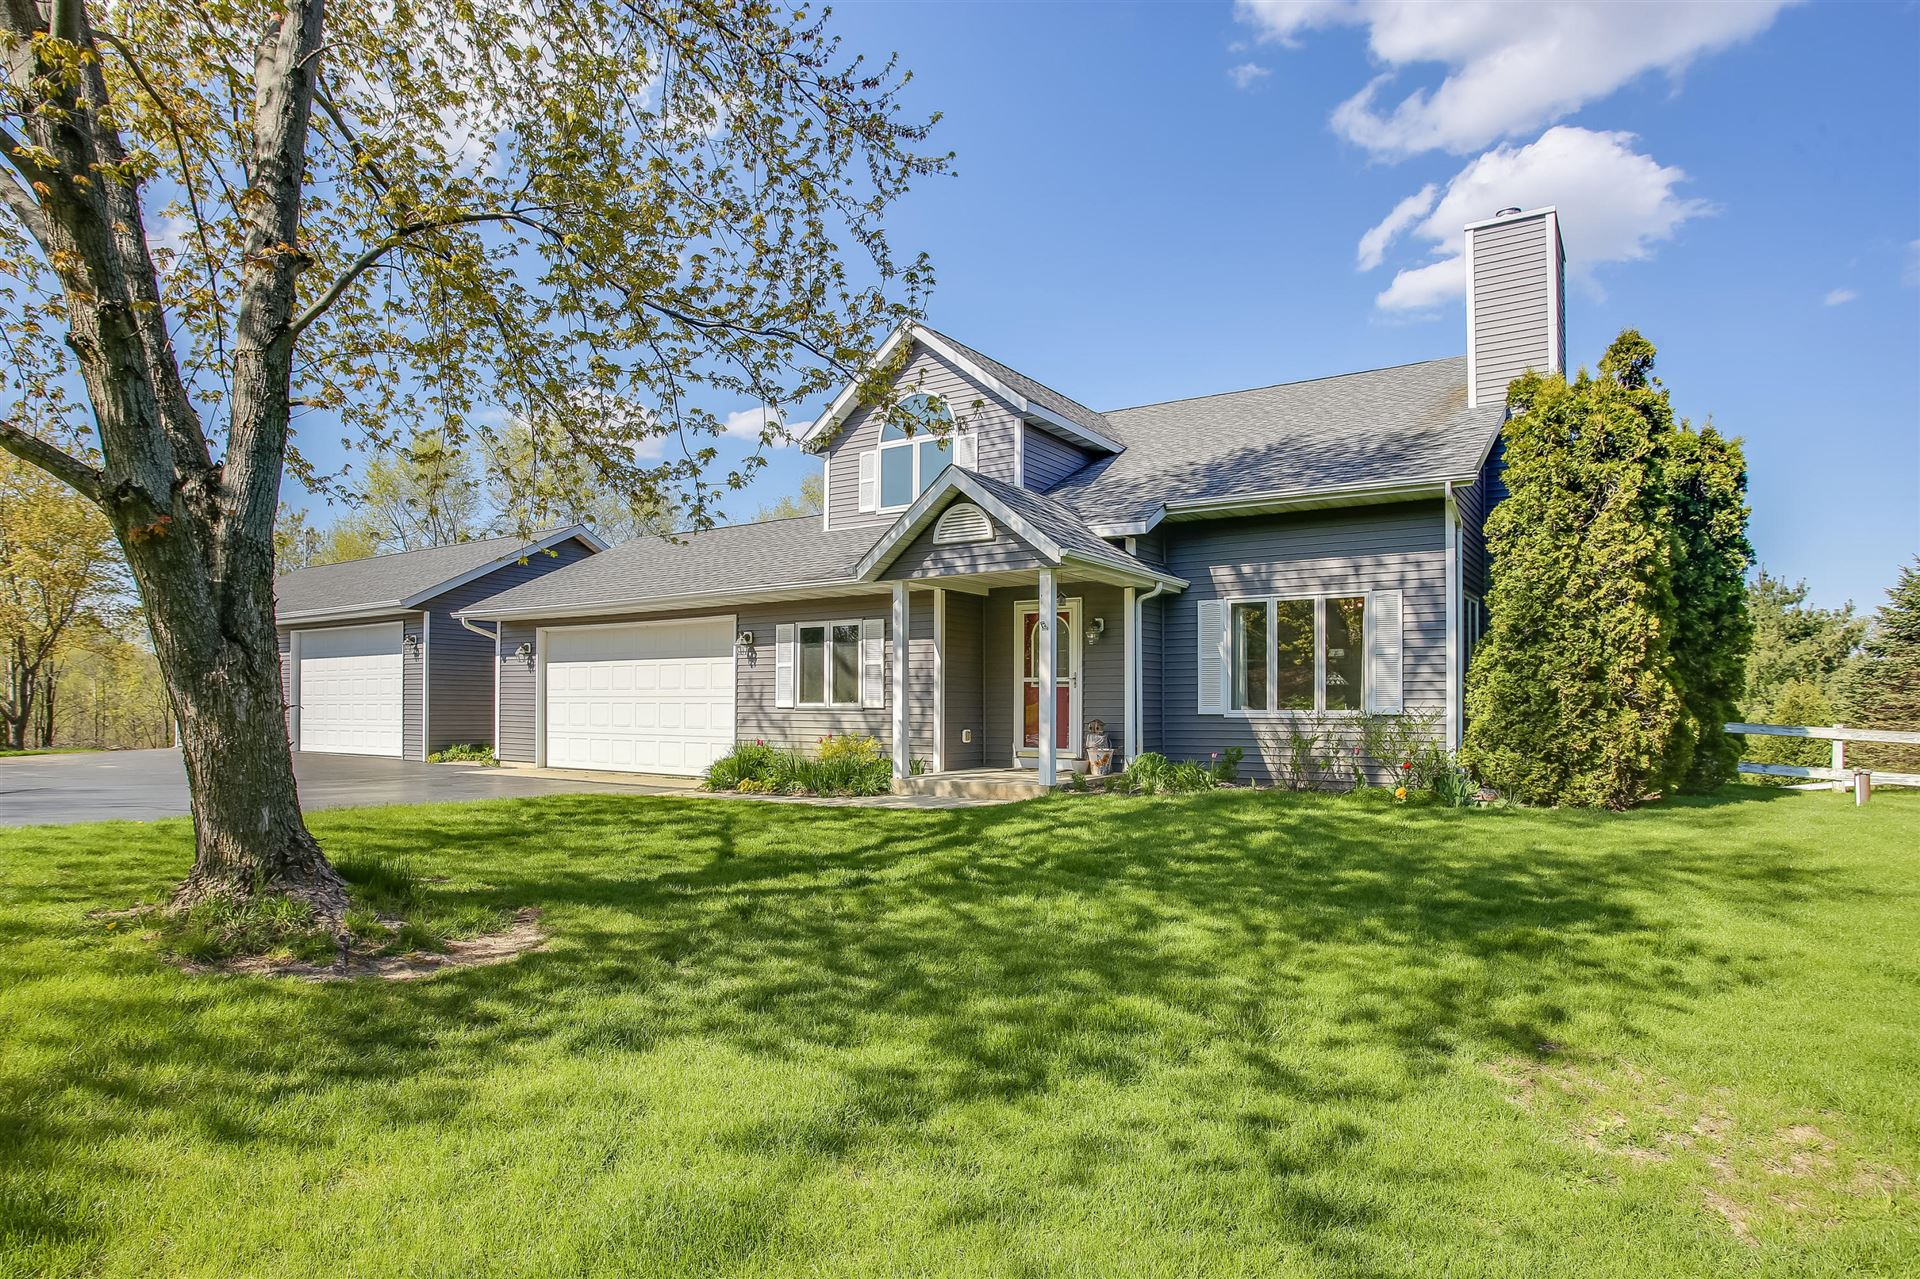 1408 Pond Rd, Twin Lakes, WI 53181 - #: 1689048